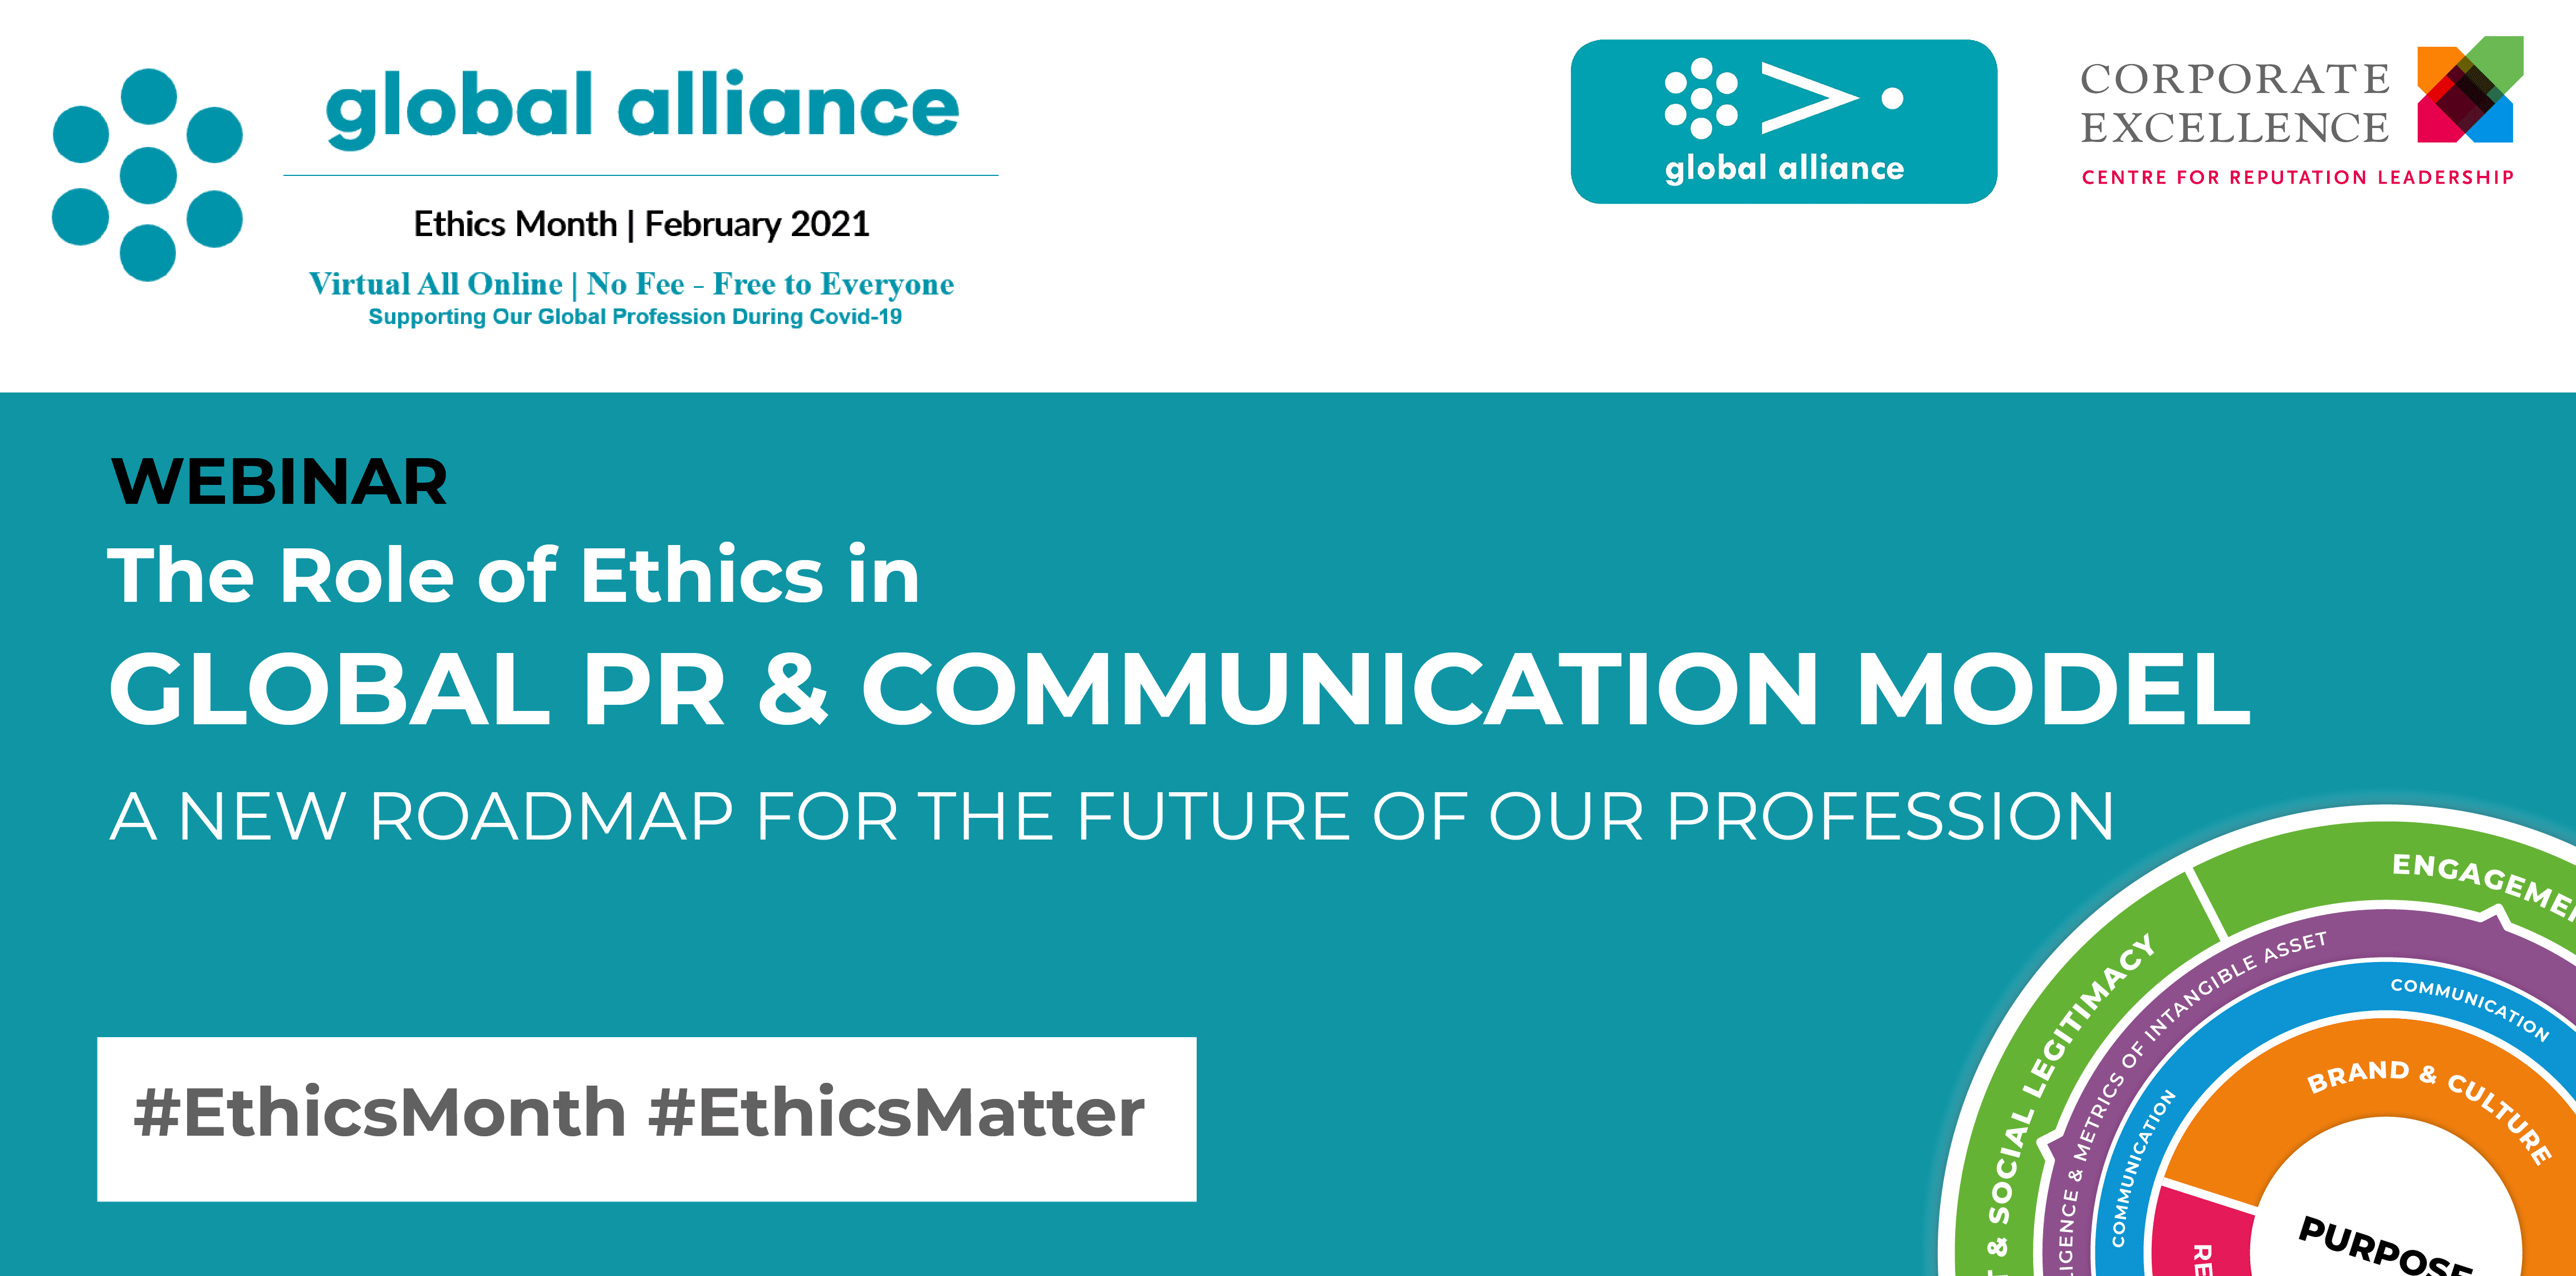 The Role of Ethics in 2021 Global PR & Comms Model